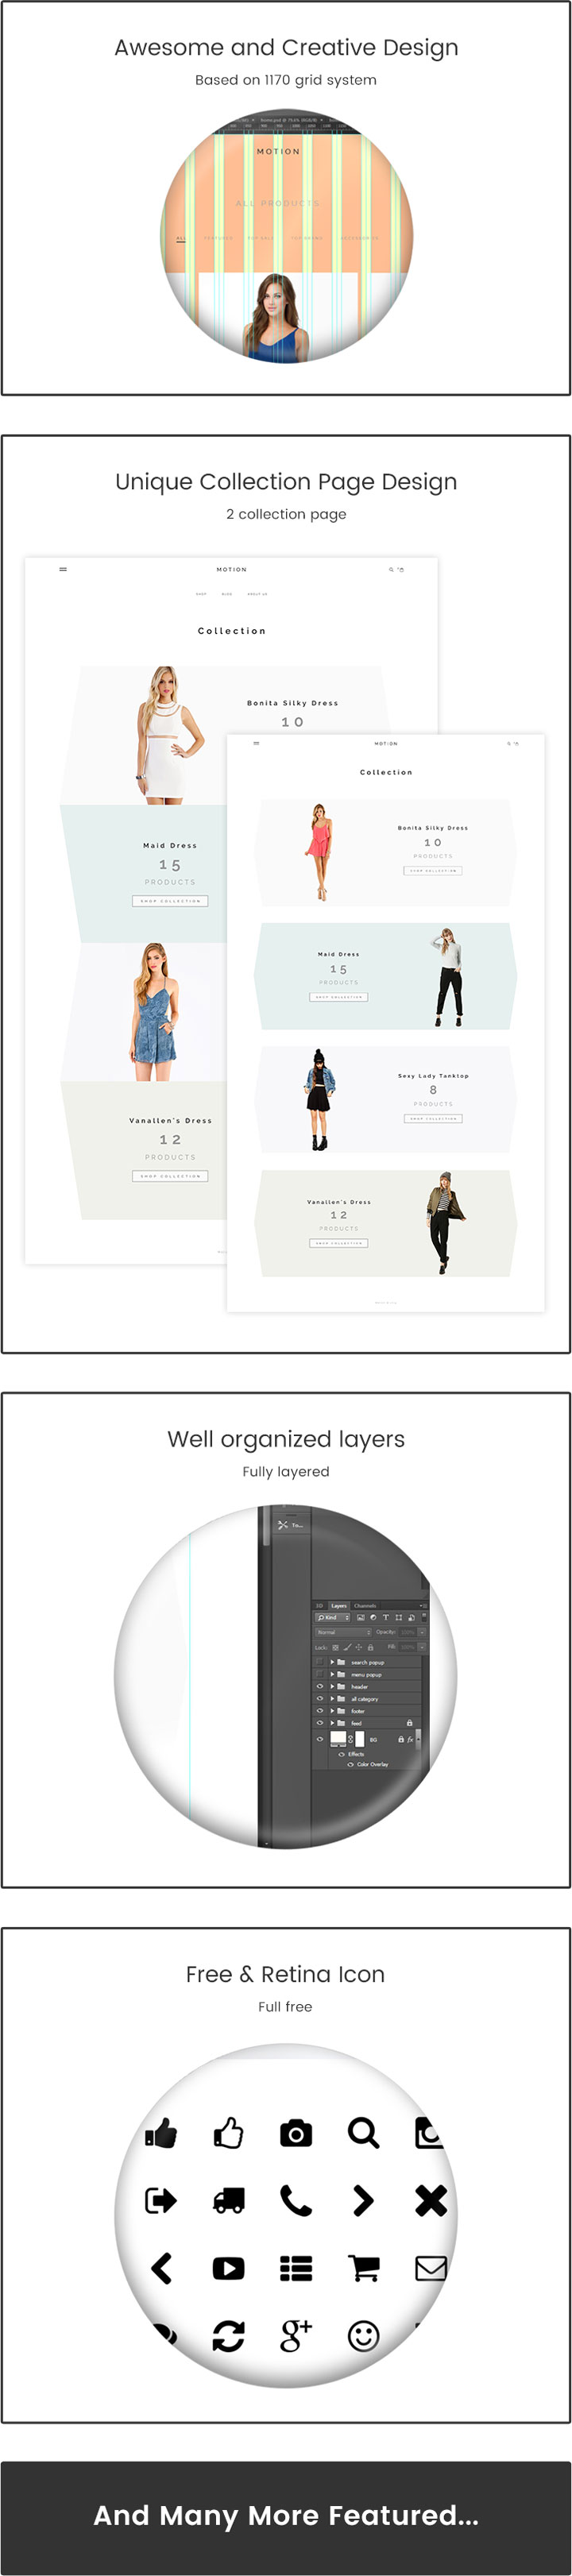 themetidy-Motion-Premium-Clothing-&-Fashion-eCommerce-PSD-Template-html-feature-list-image